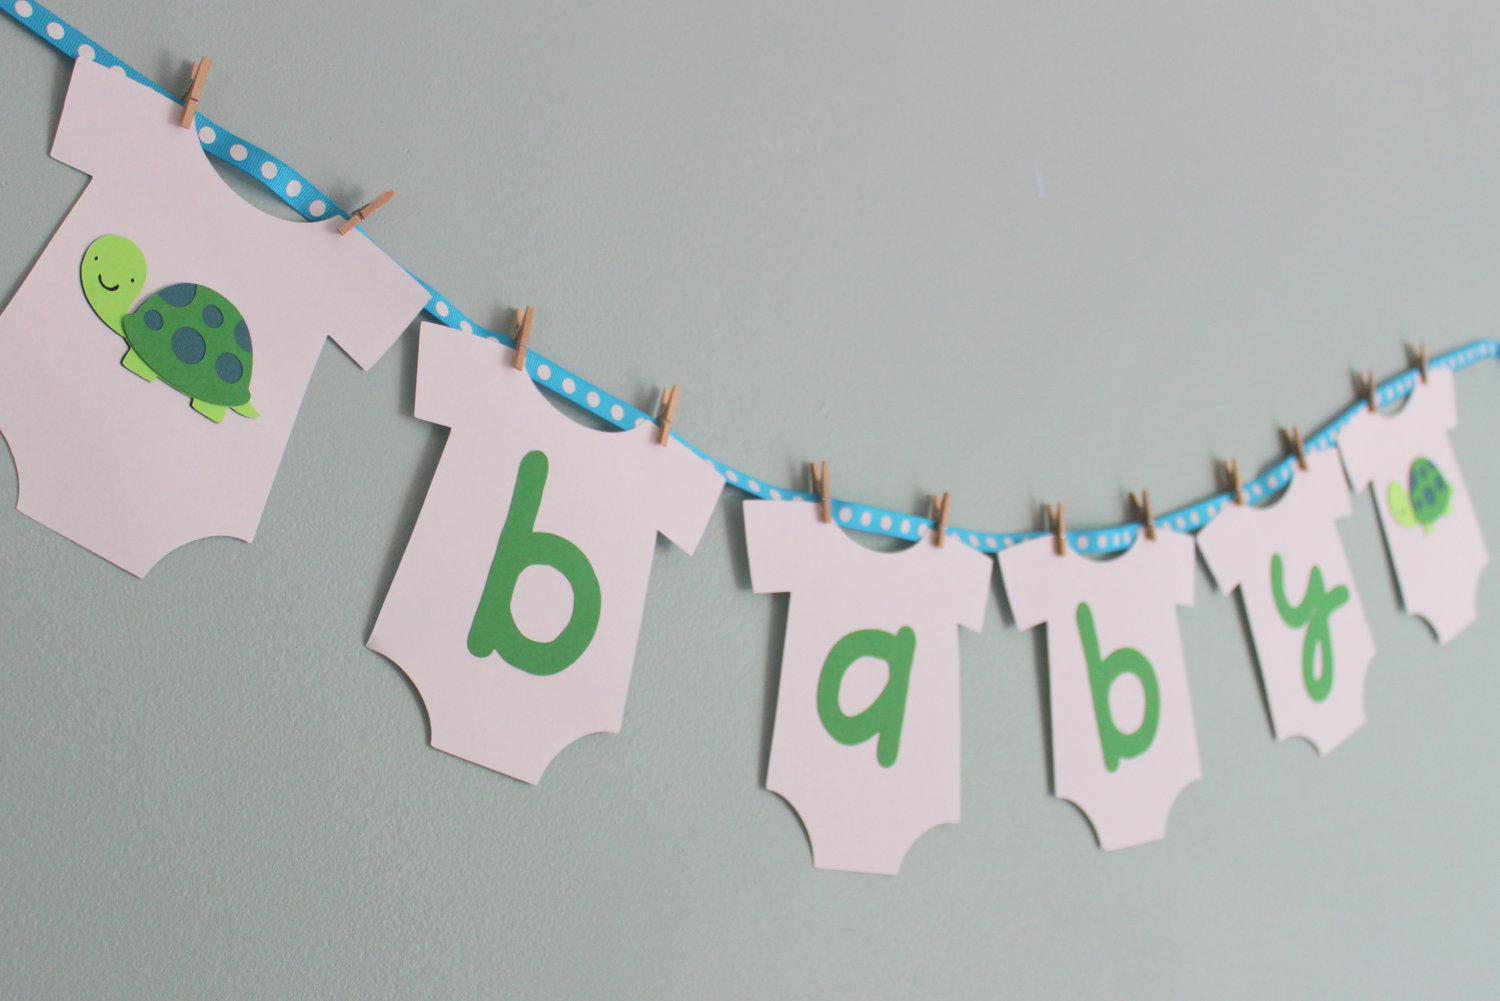 Full Size of Baby Shower:89+ Indulging Baby Shower Banner Picture Inspirations Baby Shower Banner My Baby Shower Bebe Baby Shower Twins Baby Shower Ideas De Baby Shower Modern Baby Shower